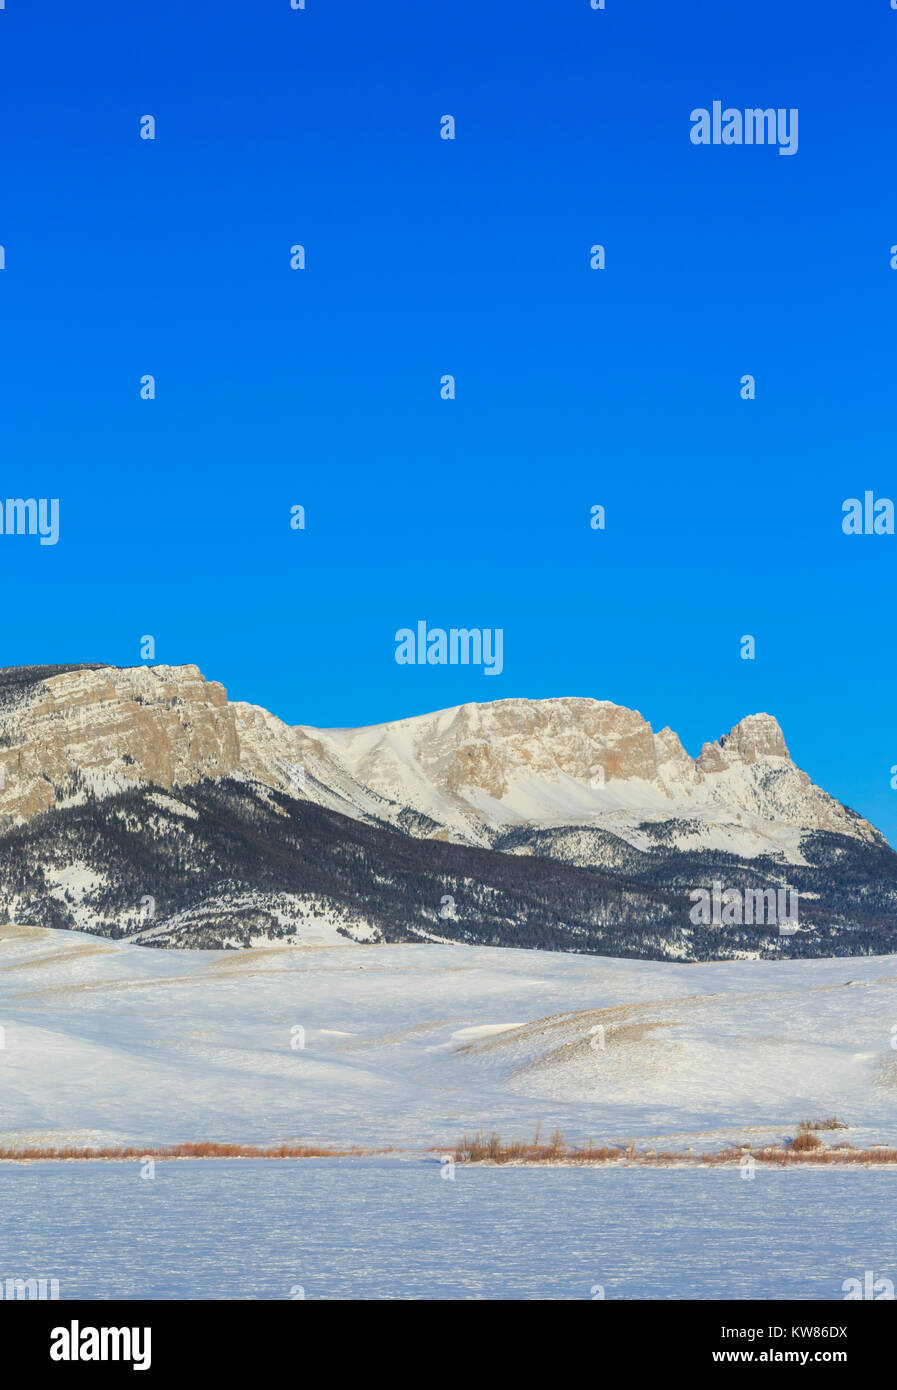 sawtooth ridge along the rocky mountain front above frozen anderson lake in winter near augusta, montana - Stock Image